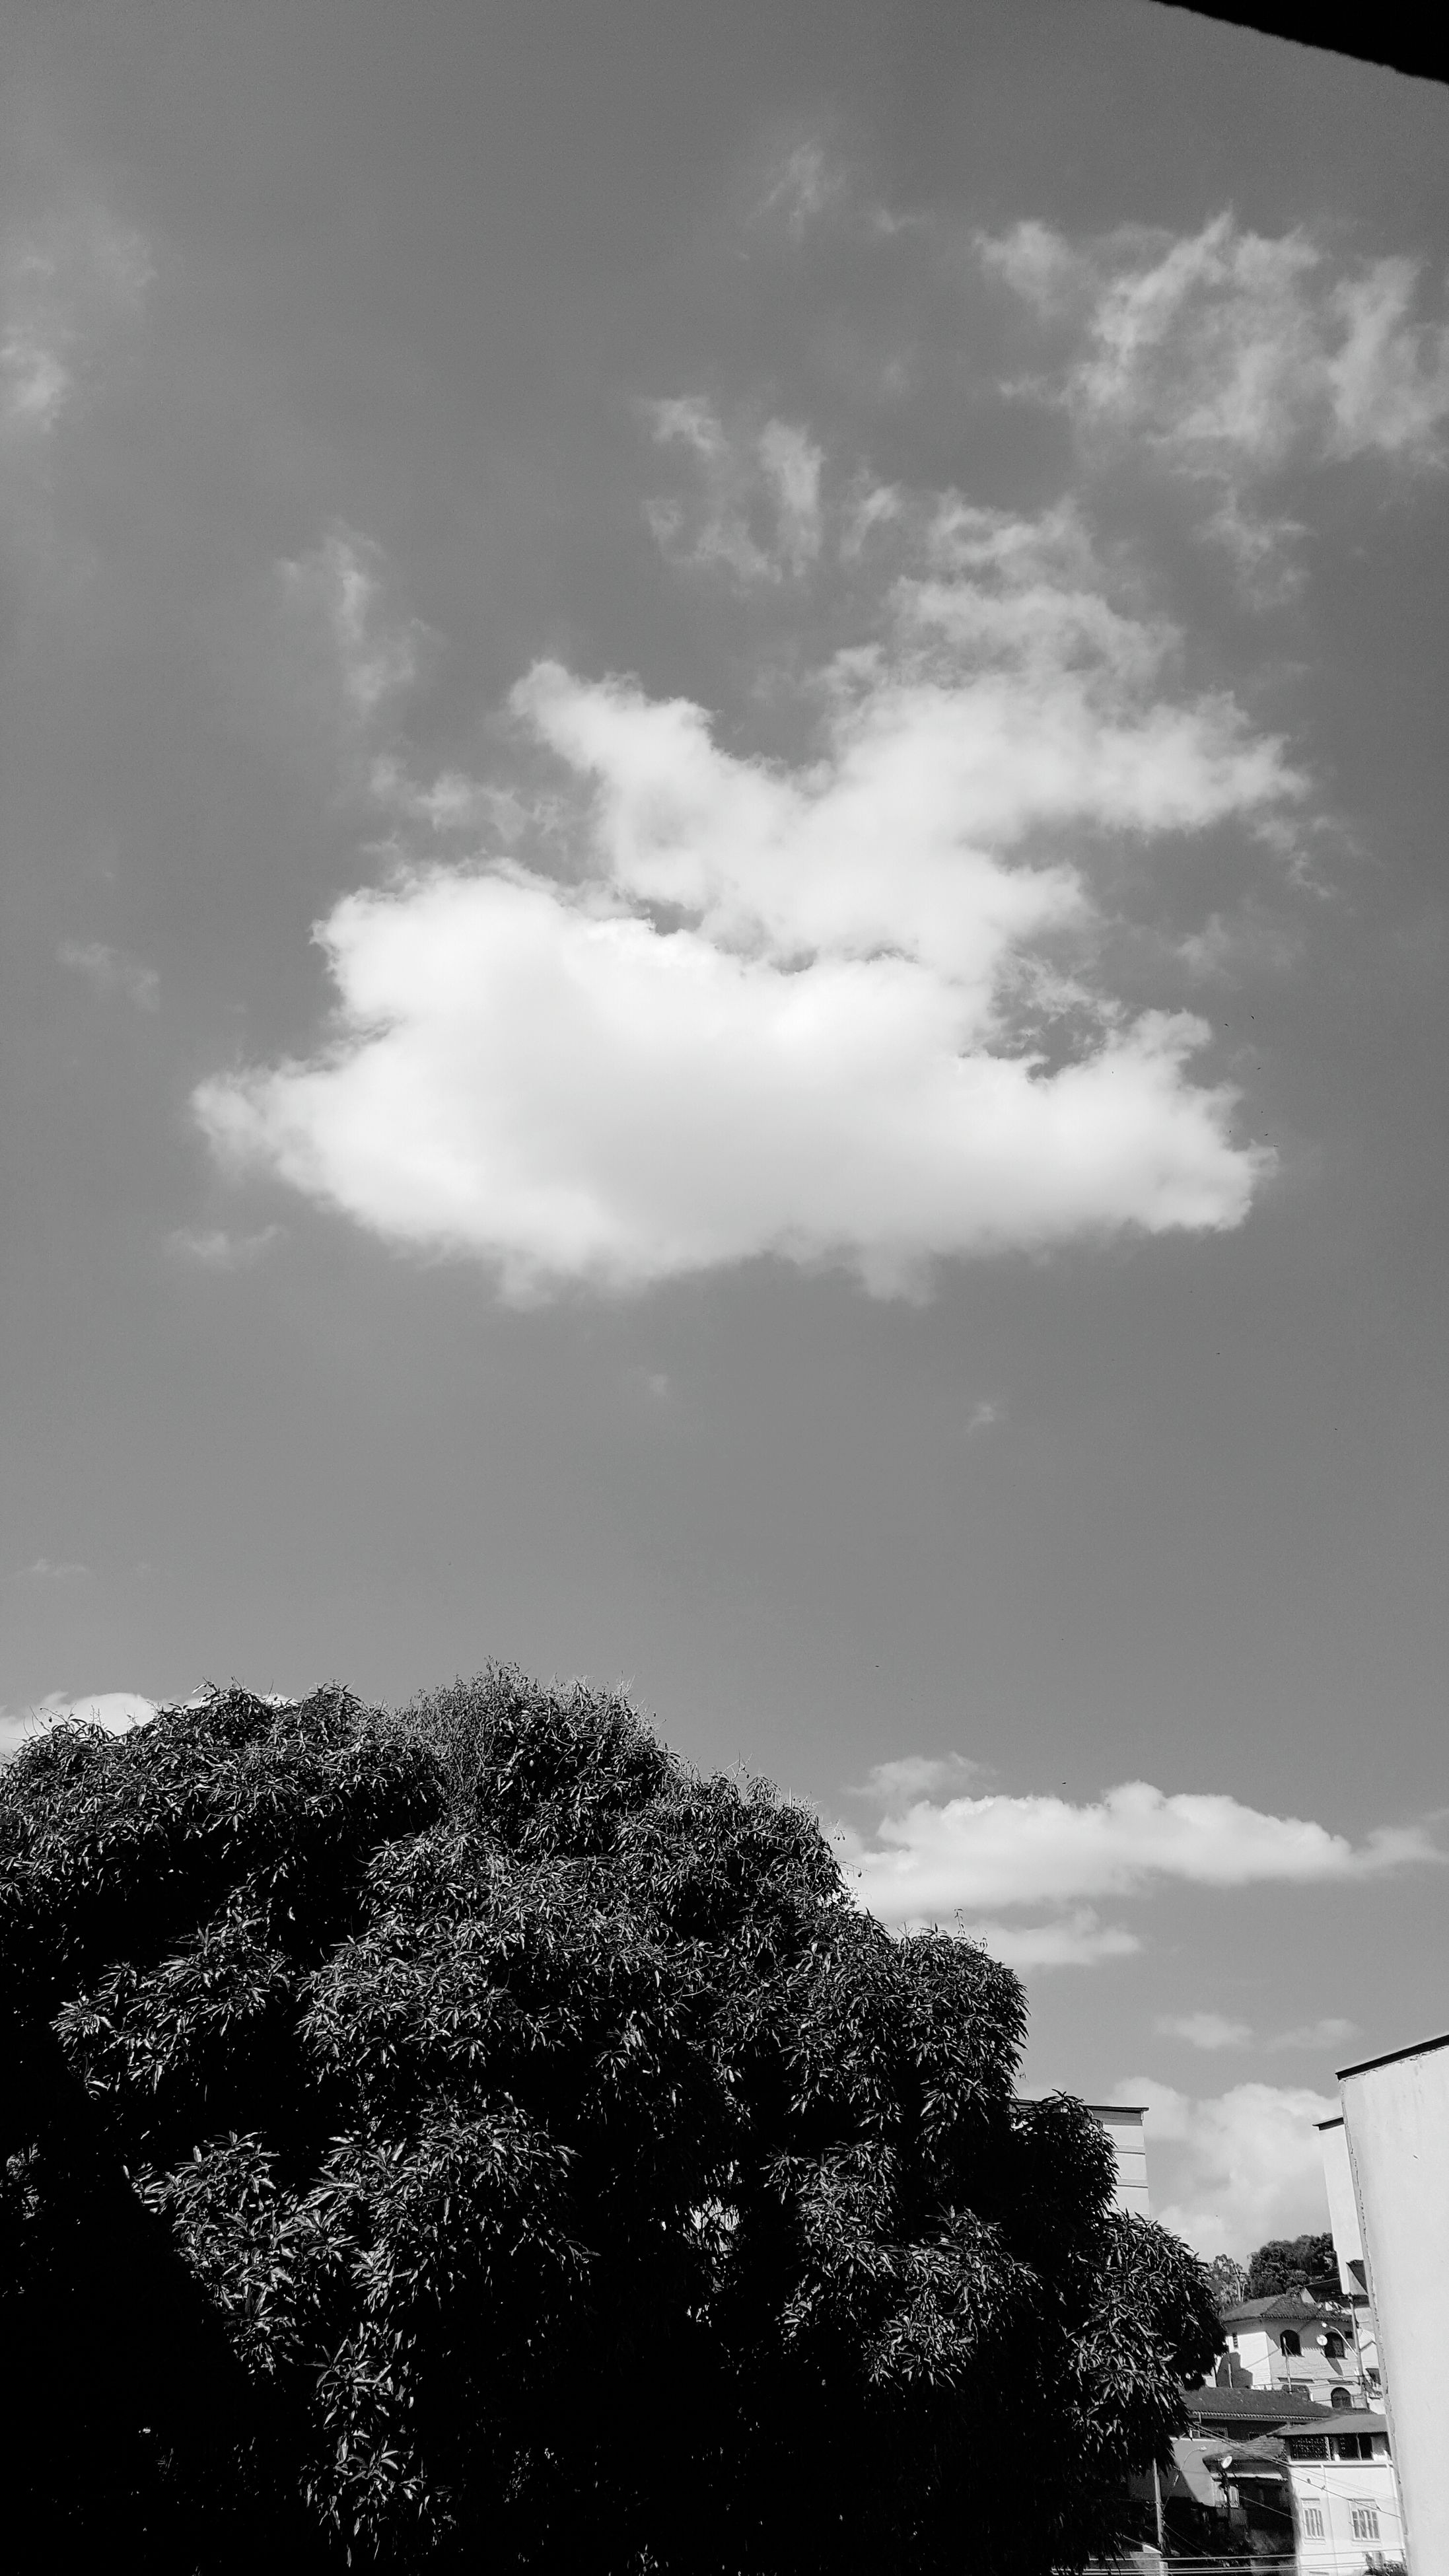 tree, sky, low angle view, nature, no people, outdoors, day, cloud - sky, beauty in nature, tranquility, growth, scenics